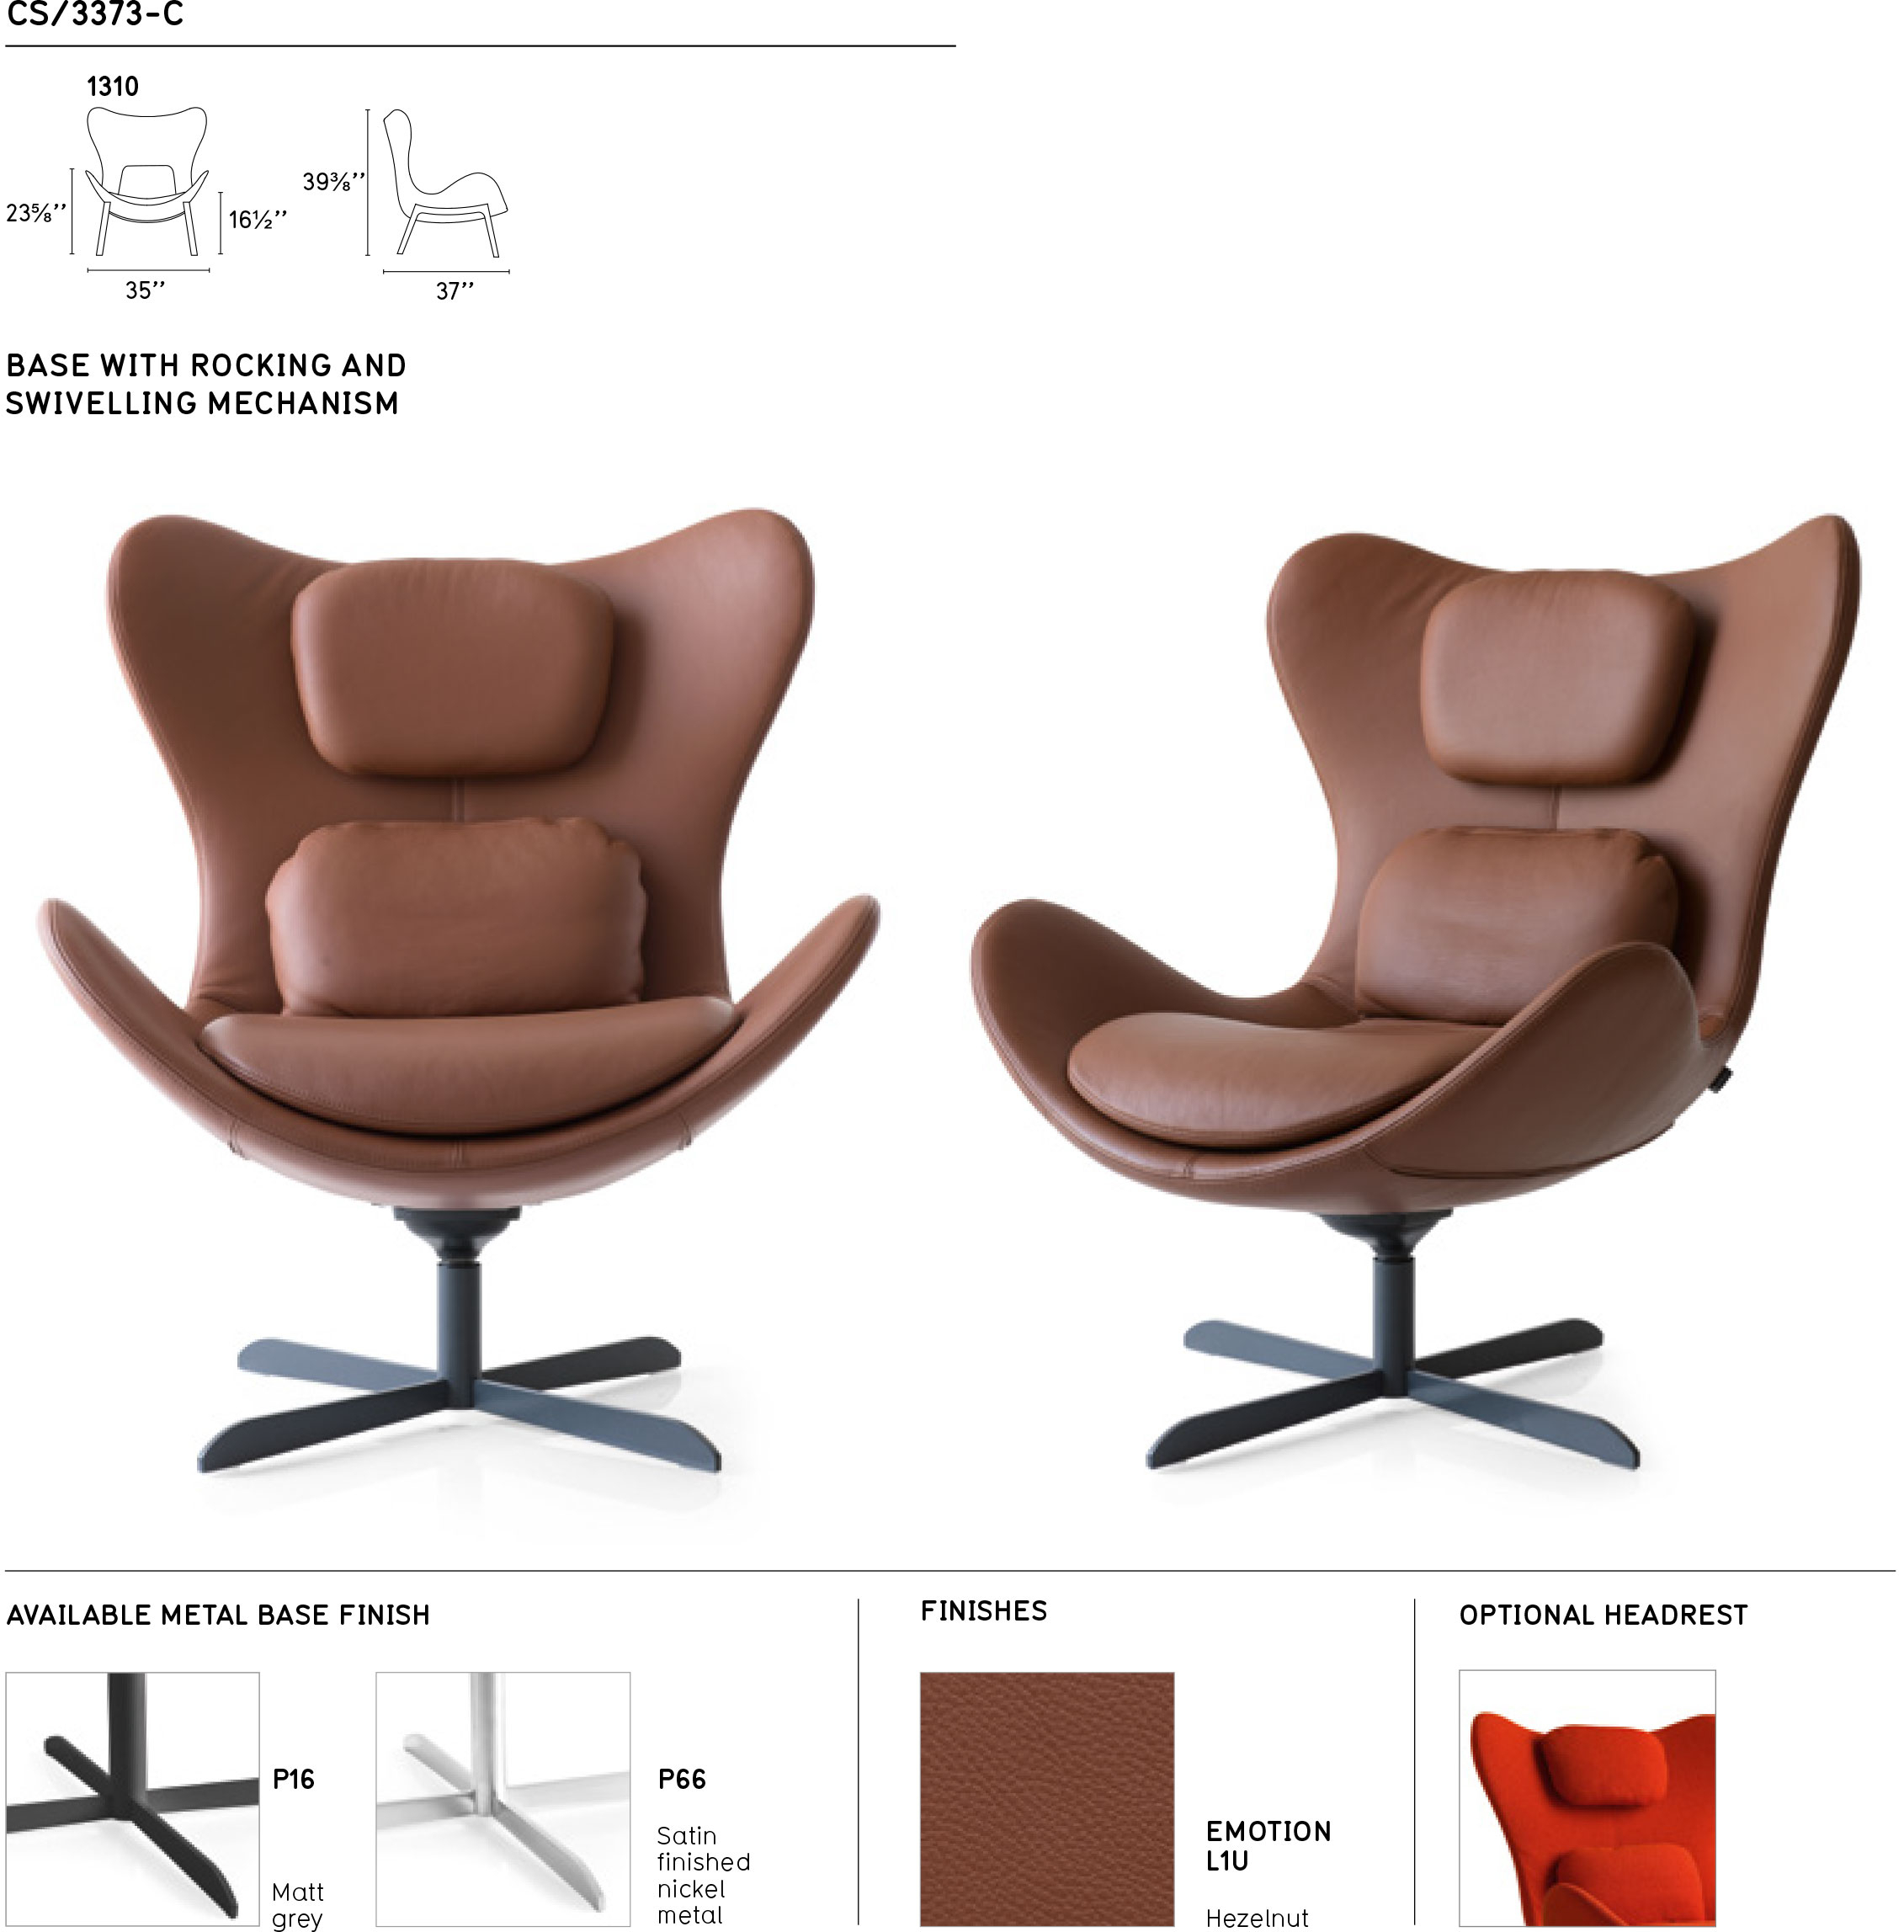 Lazy Cs/3373 C 1310 Swinging Swivel Chaircalligaris, Italy Inside Chill Swivel Chairs With Metal Base (Image 24 of 25)